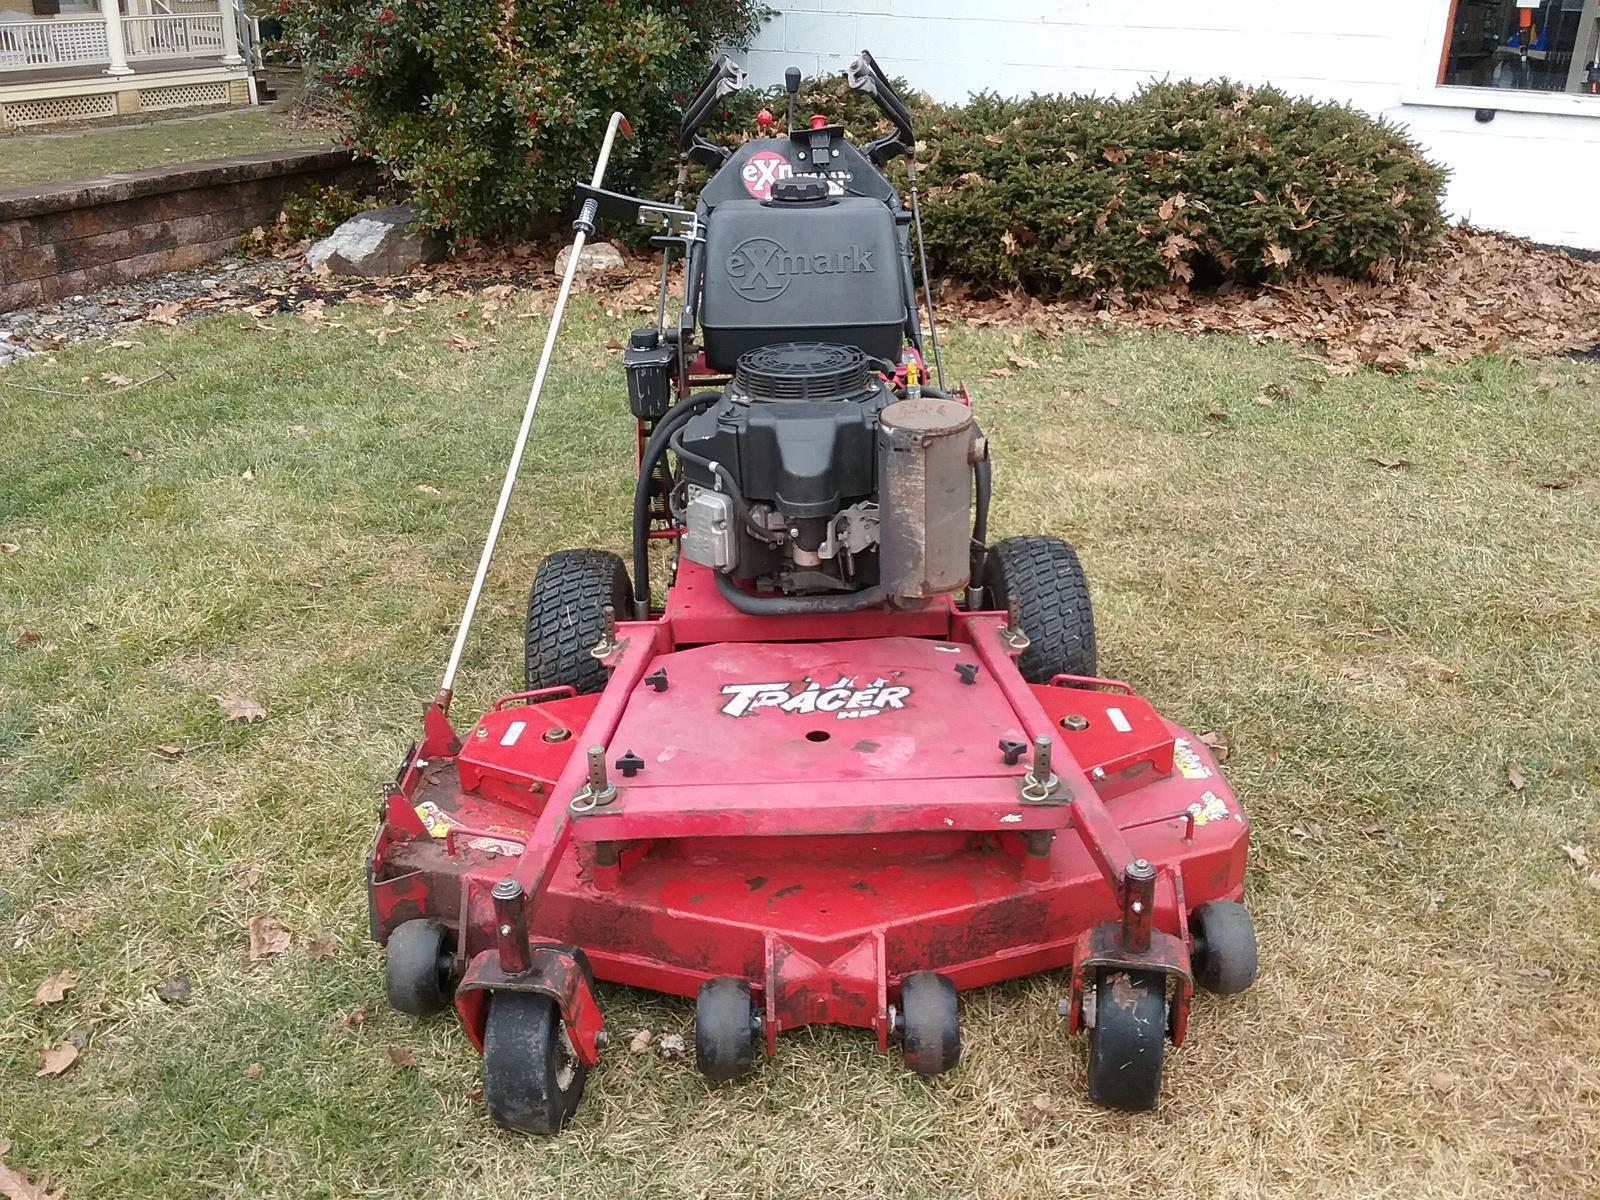 Inventory From Exmark And Walker Mowers Ebling S R S Hollinger